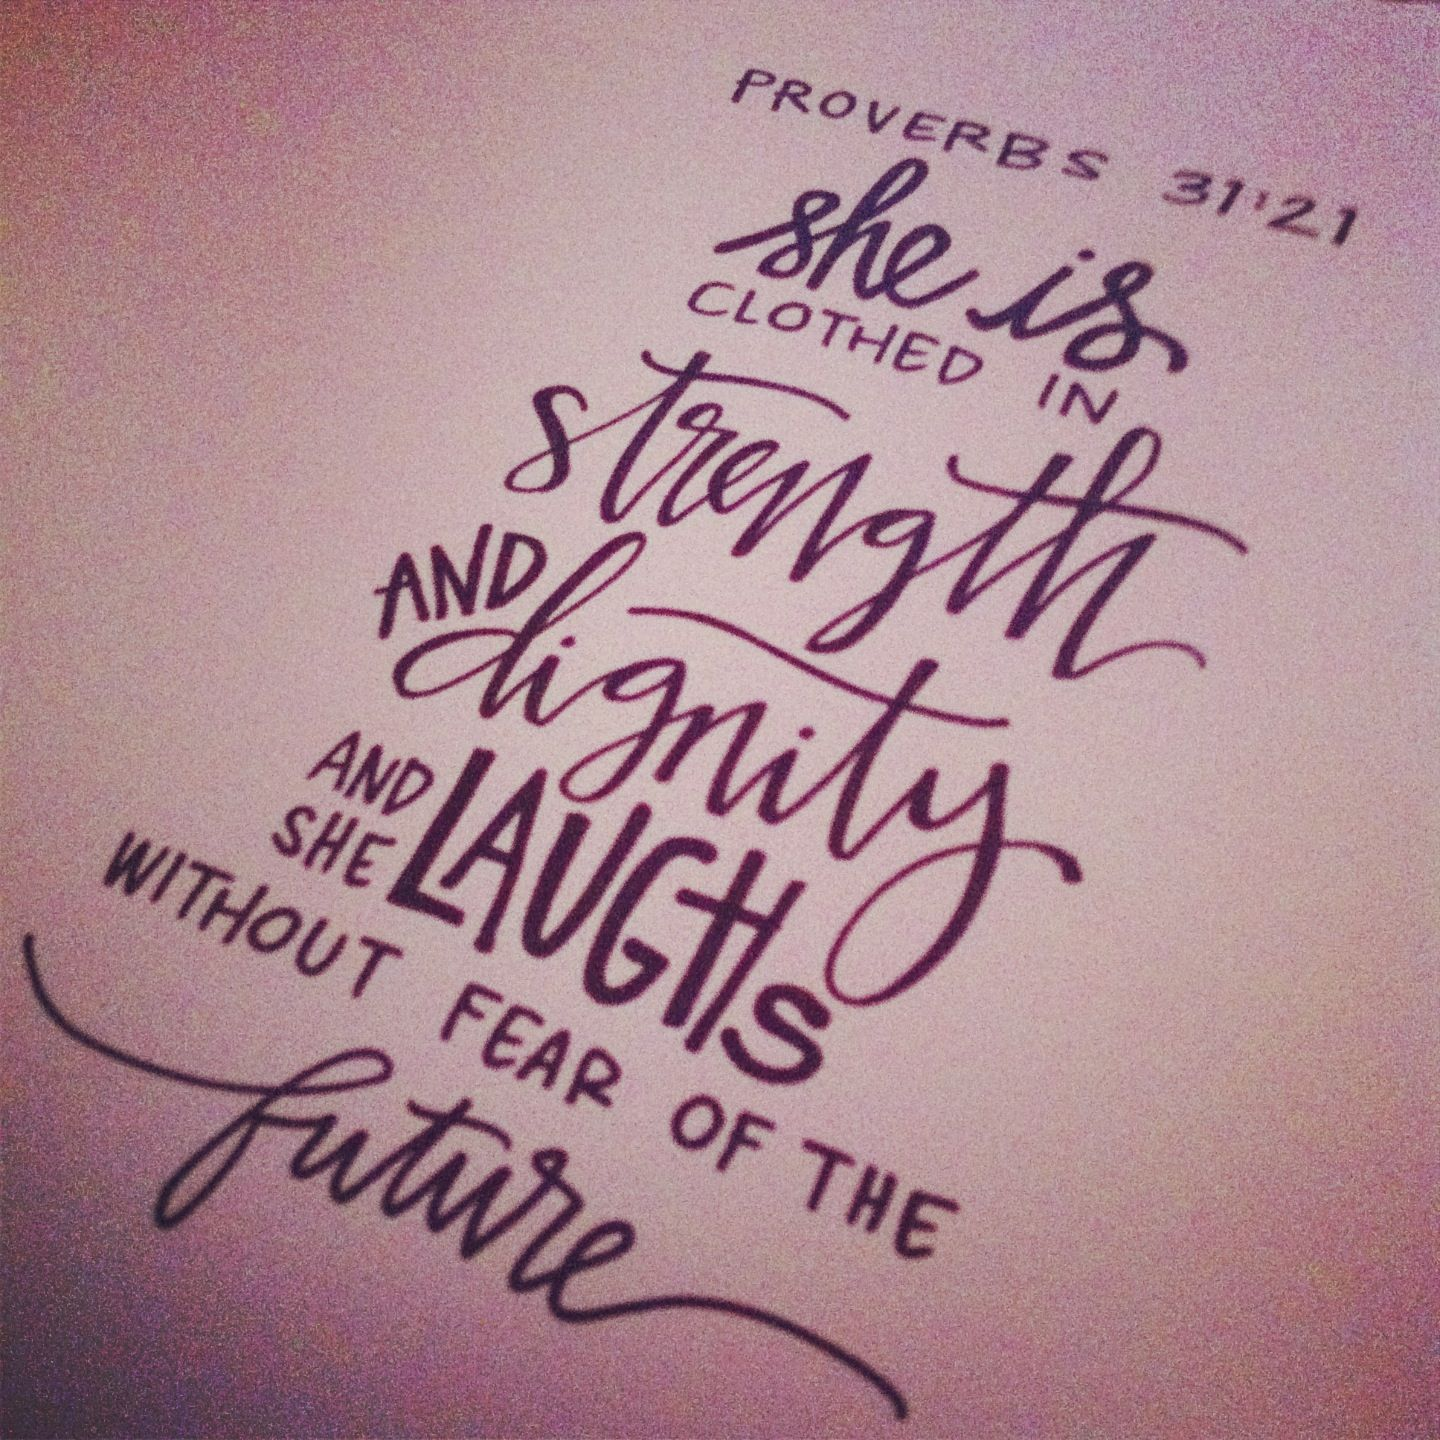 She Is Clothed In Dignity Quotes Images: Lately On Instagram…